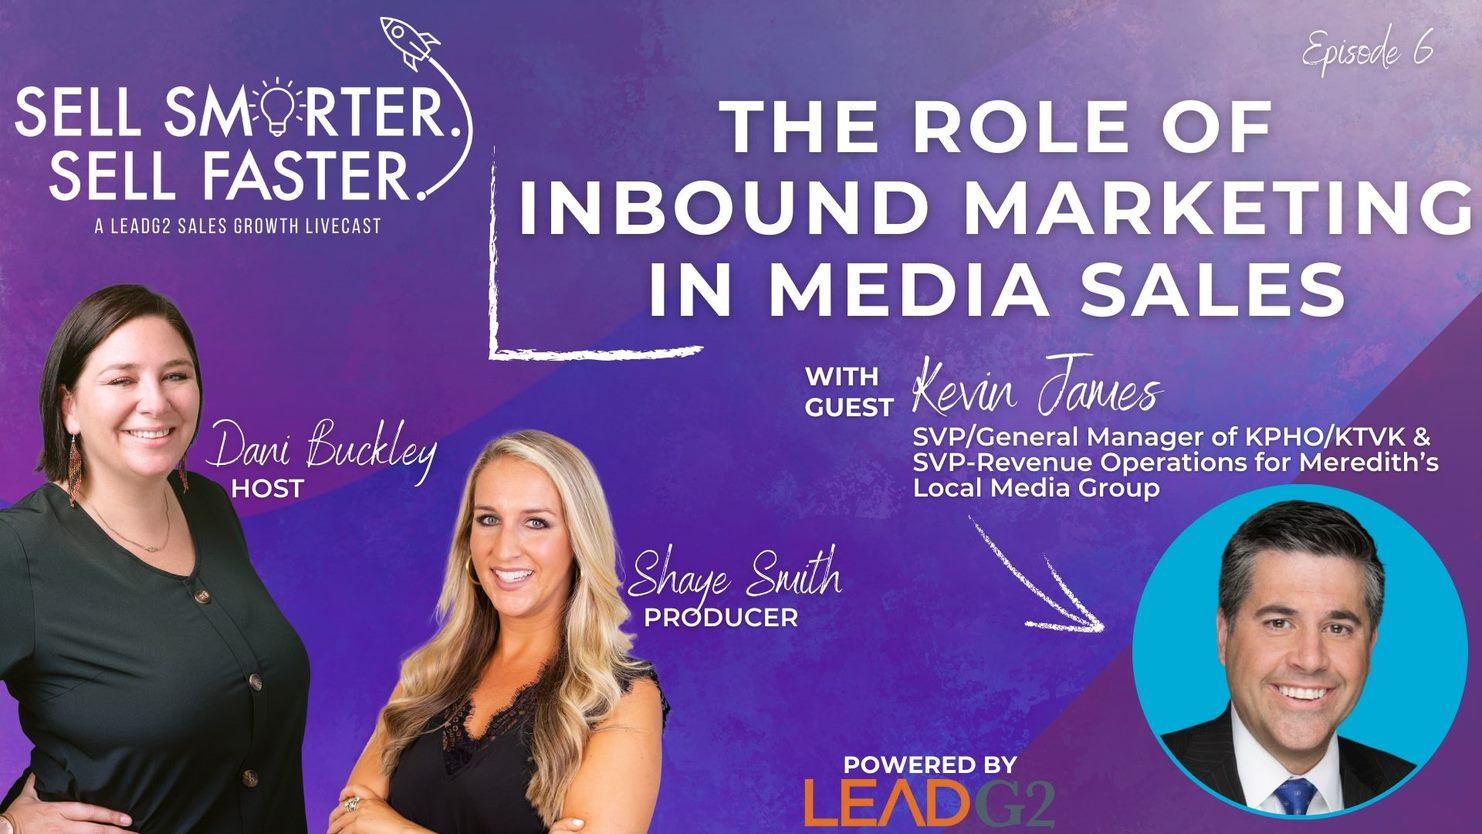 The Role of Inbound Marketing in Media Sales | Sell Smarter. Sell Faster.